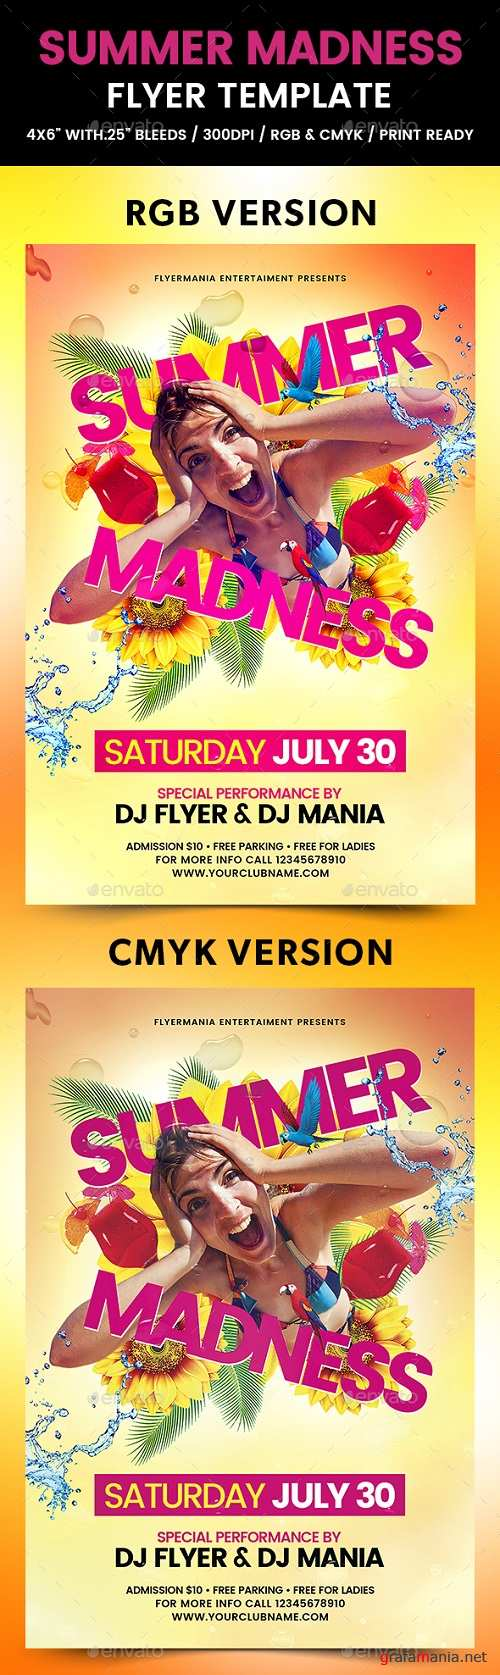 Summer Madness Flyer Template 19763840